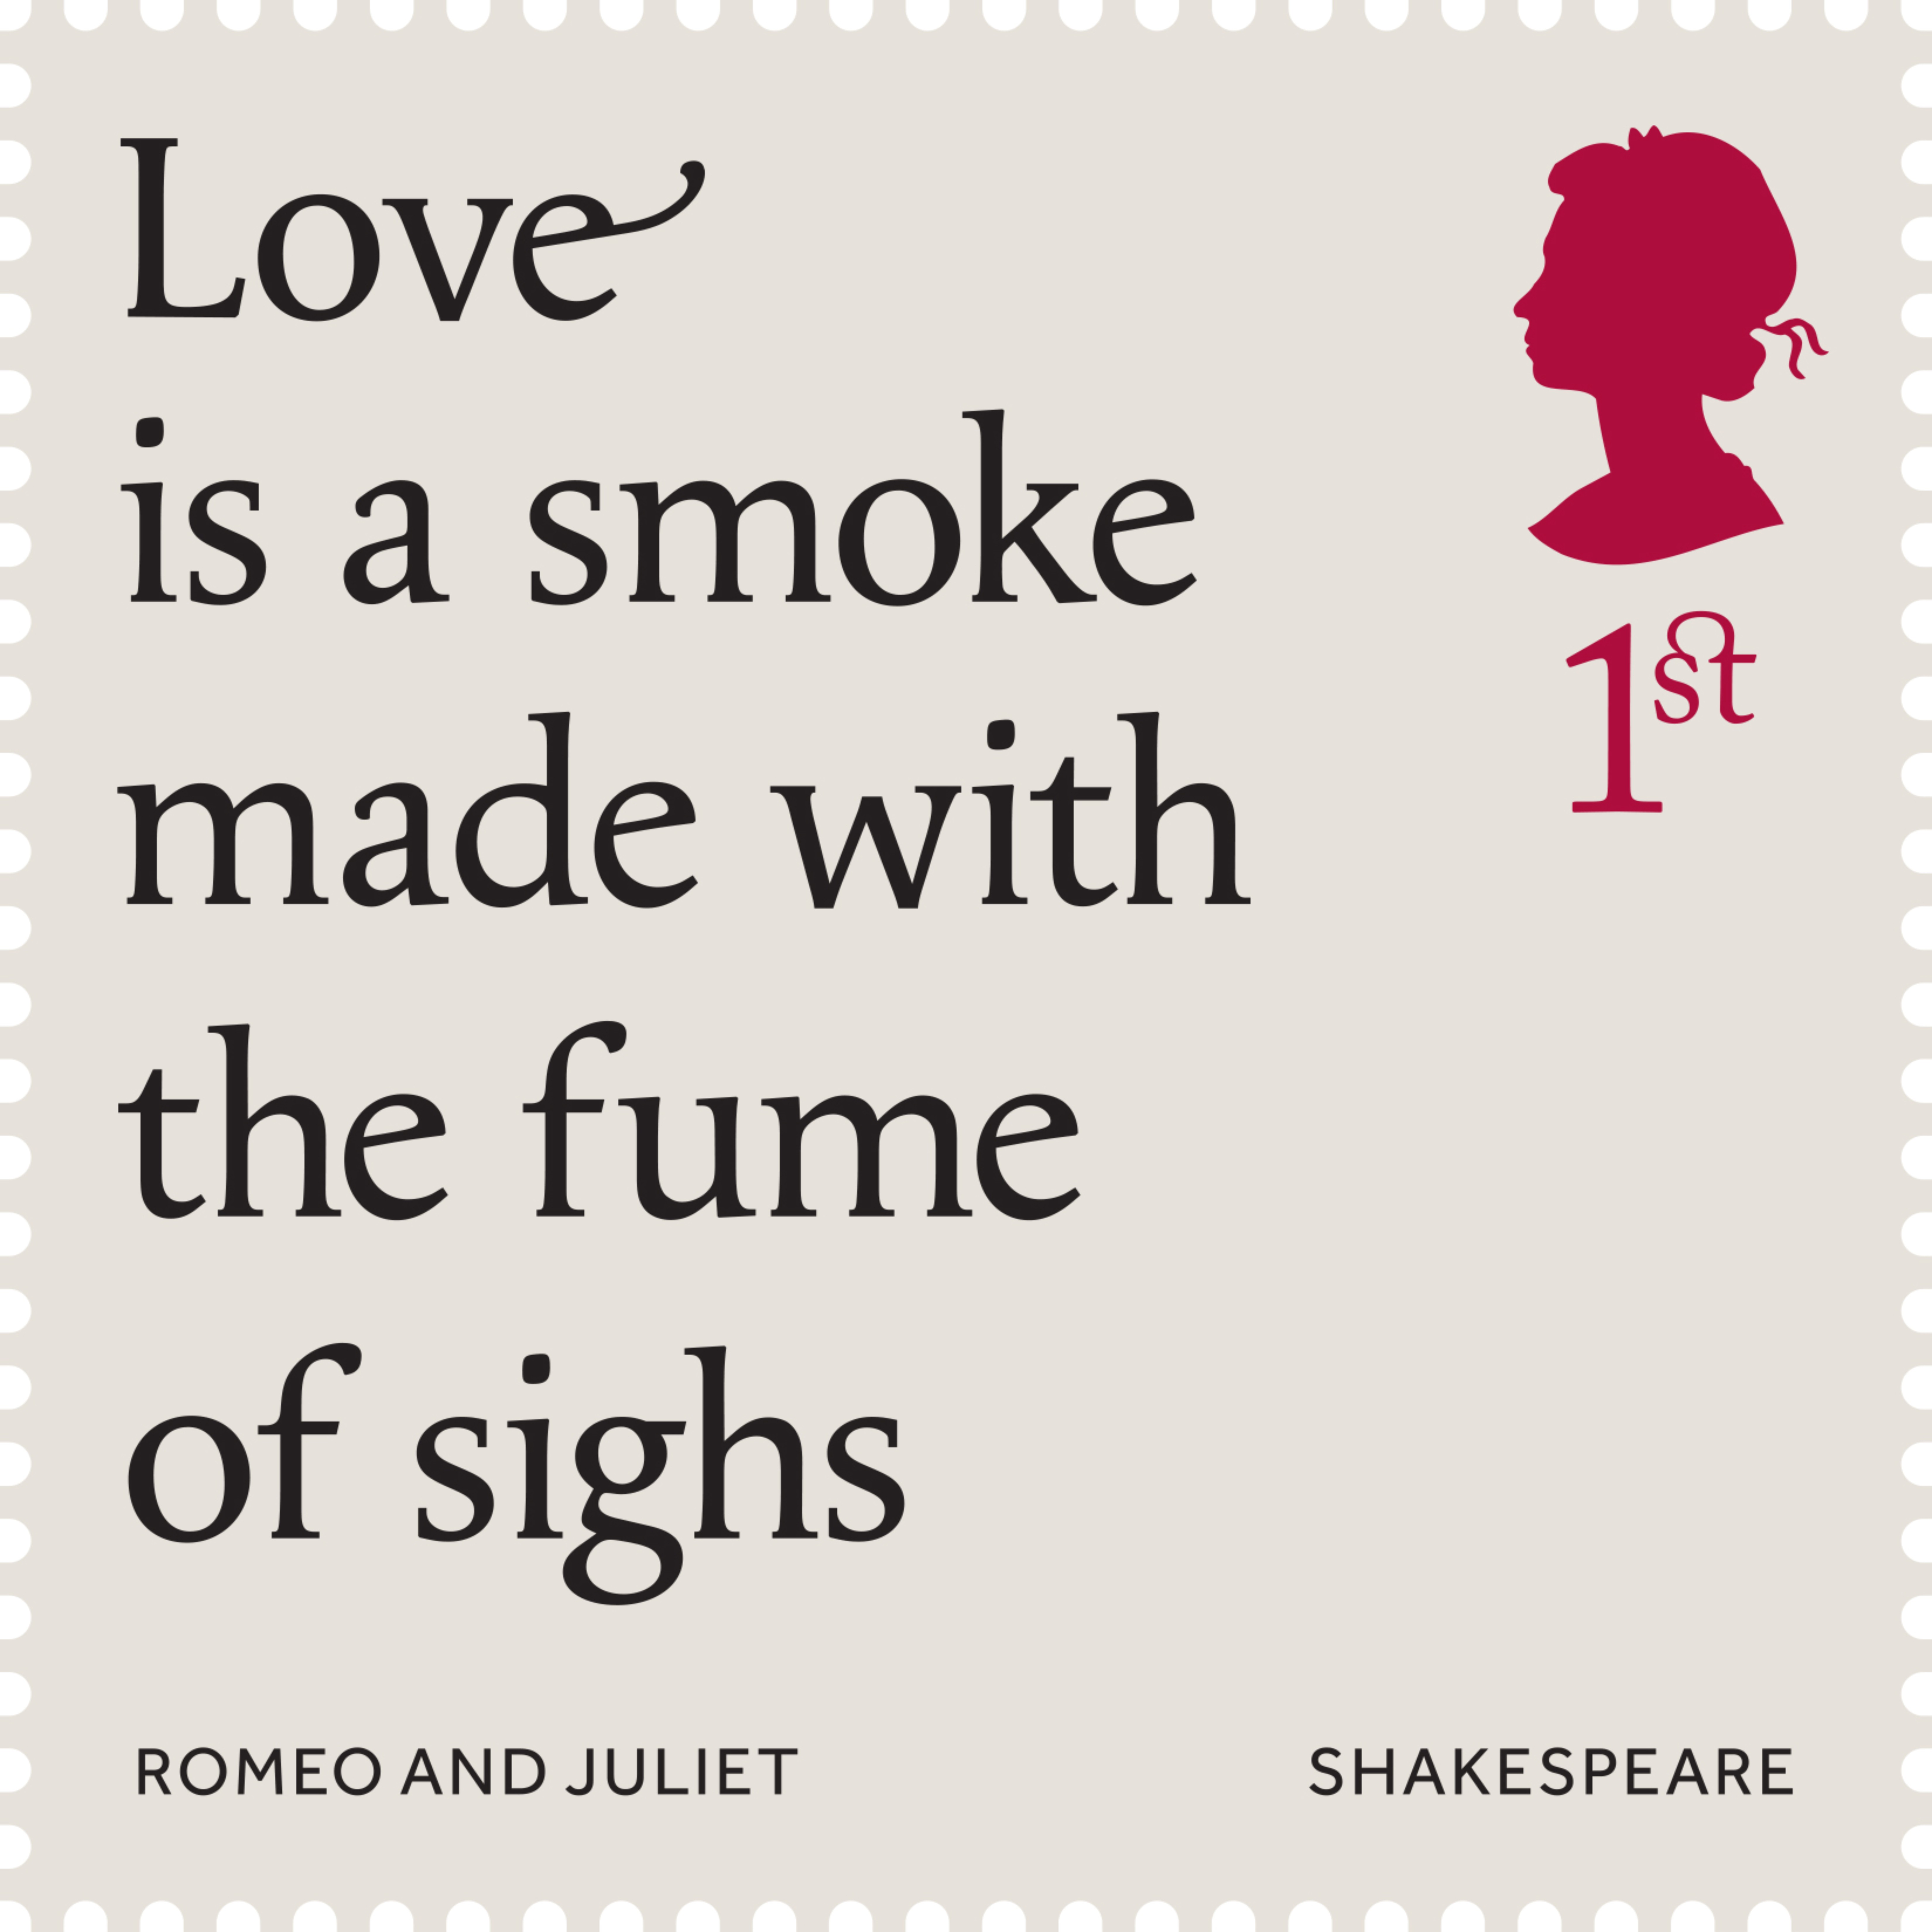 Famous Romeo And Juliet Quotes Shakespeare Romeo And Juliet Quotes Magnificent Best 25 Romeo And